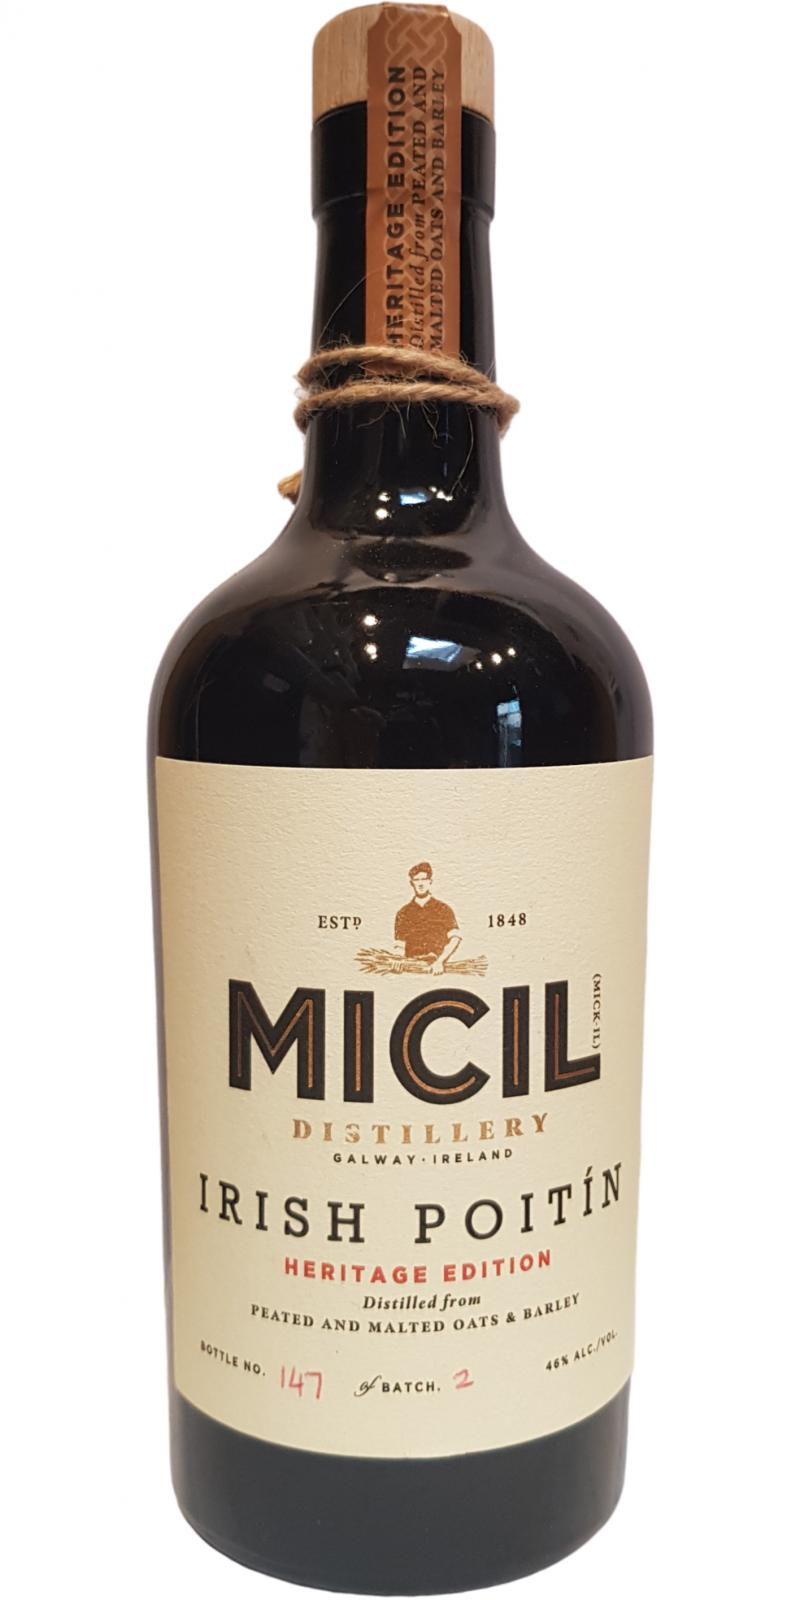 Micil Irish Poitín